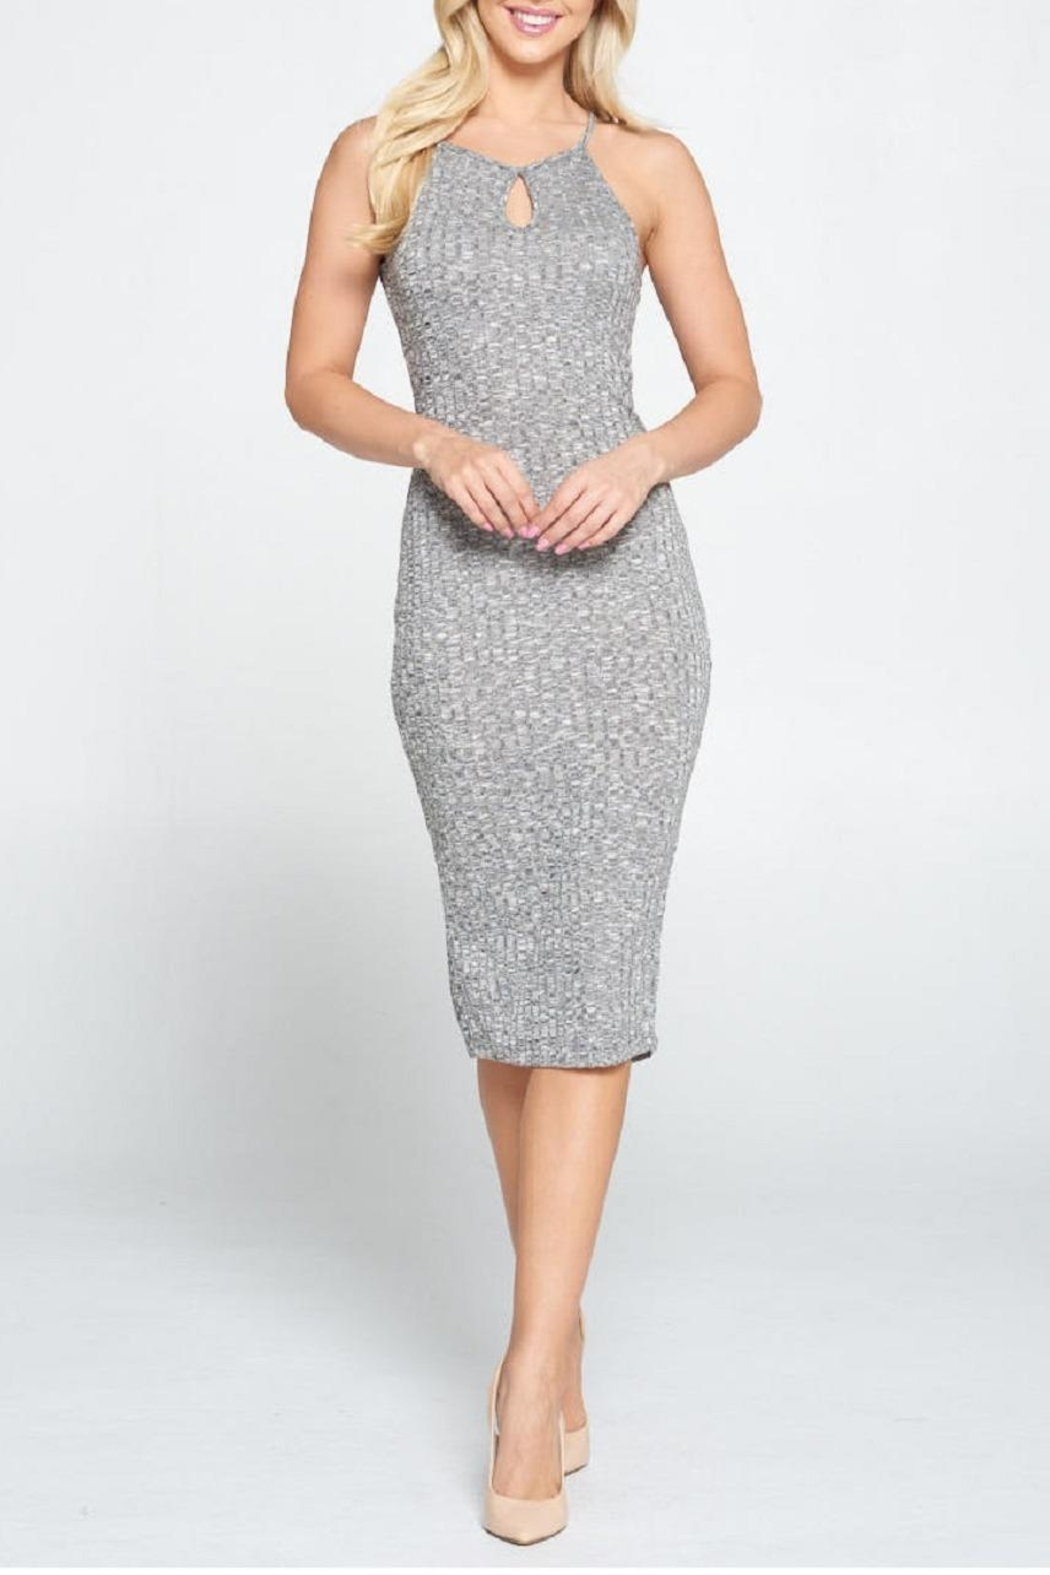 DNA Couture Ribbed Key-Hole Dress - Front Full Image